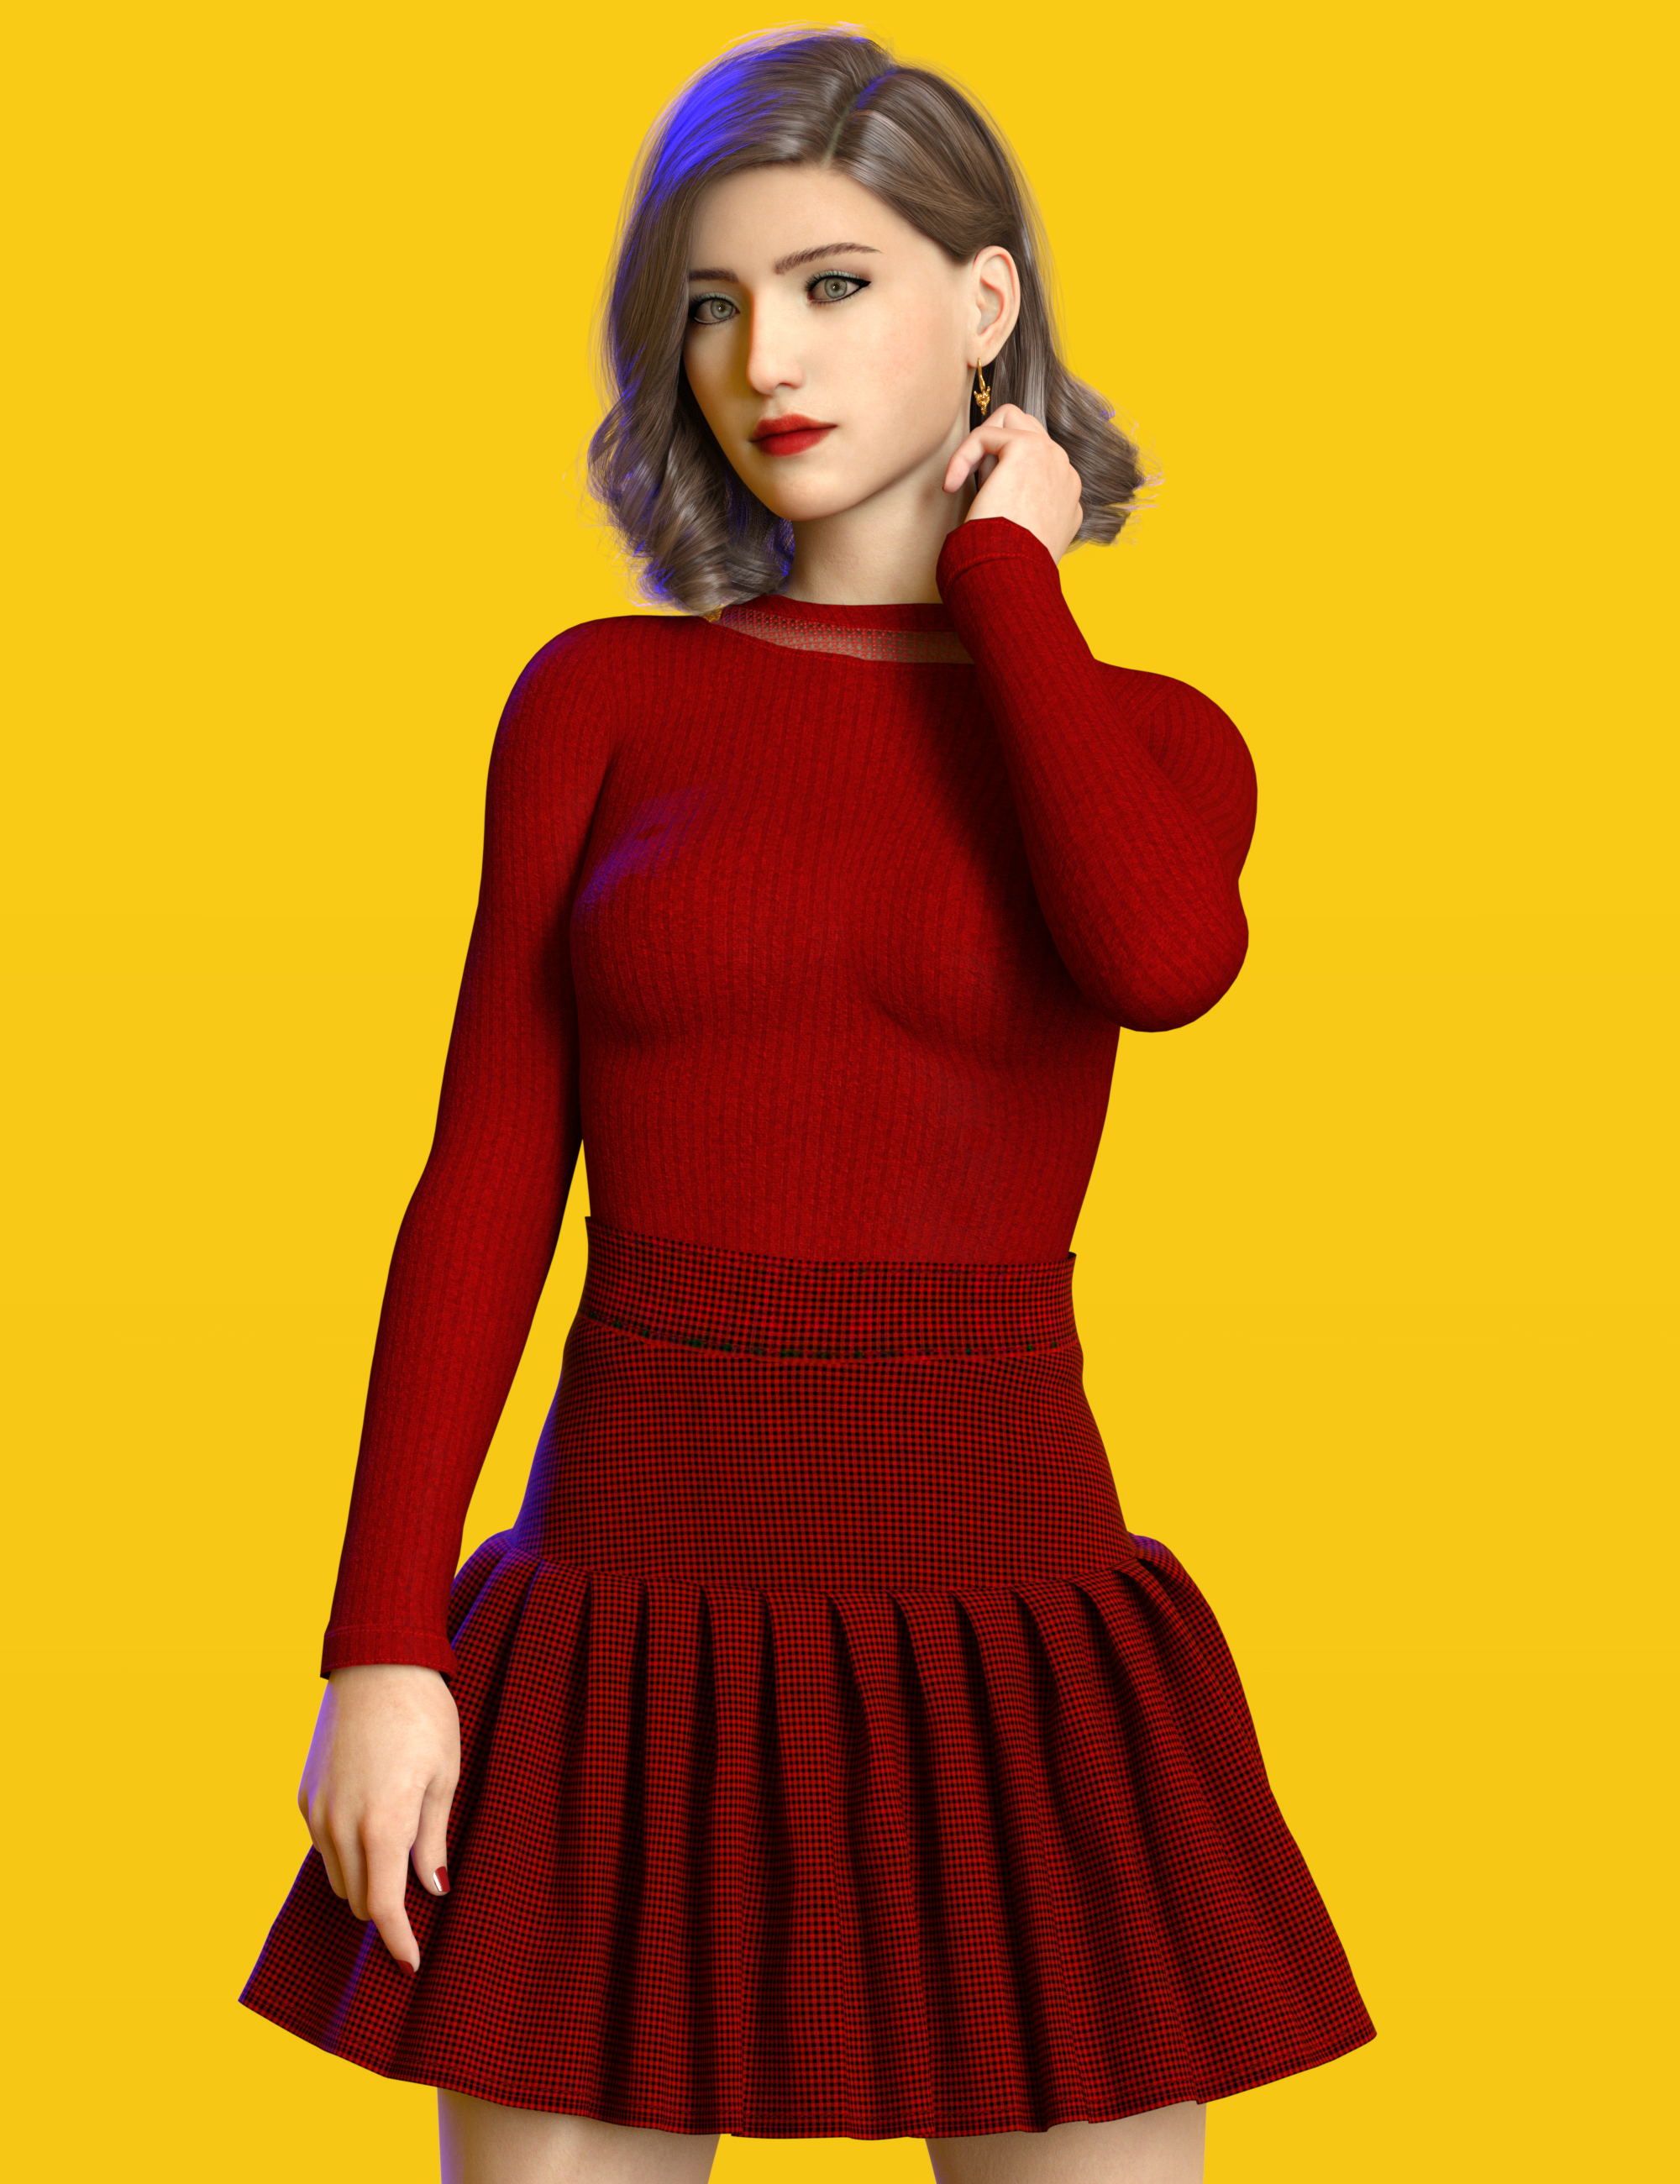 dForce Coco Outfit for Genesis 8 and 8.1 Females by: Nelmi, 3D Models by Daz 3D